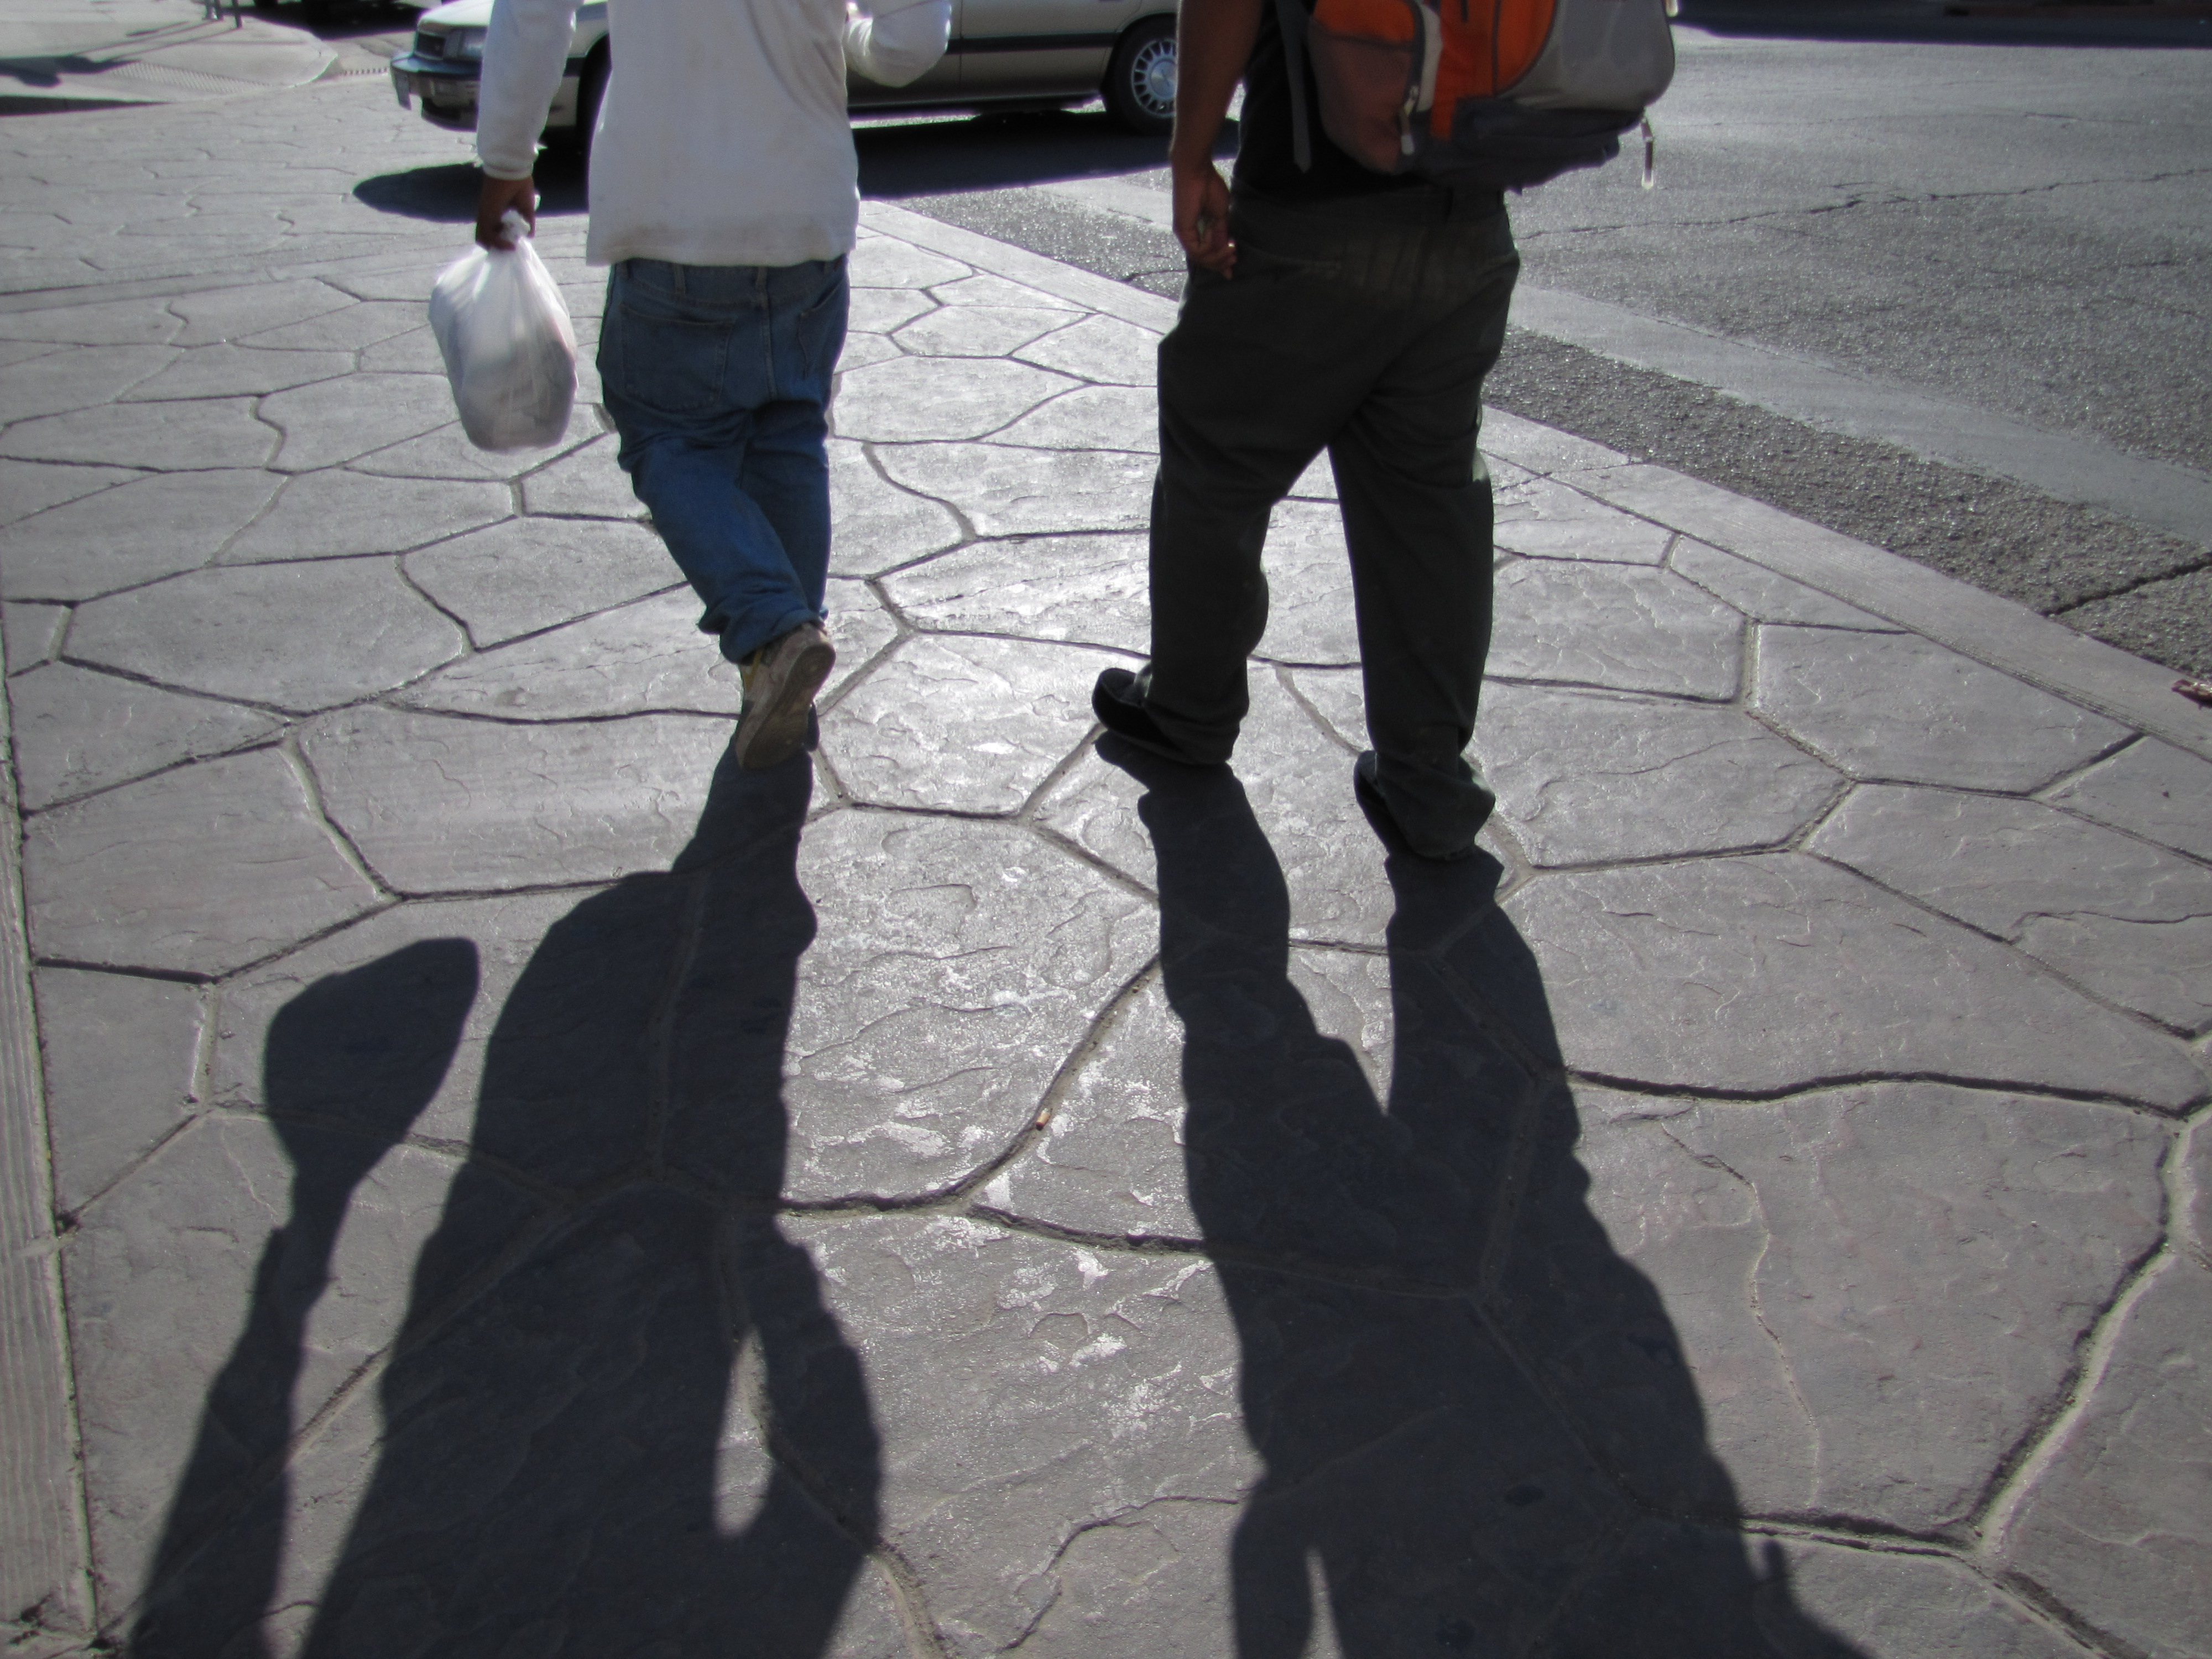 Two construction workers head back to Mexico through the Calexico border crossing after a day's work.